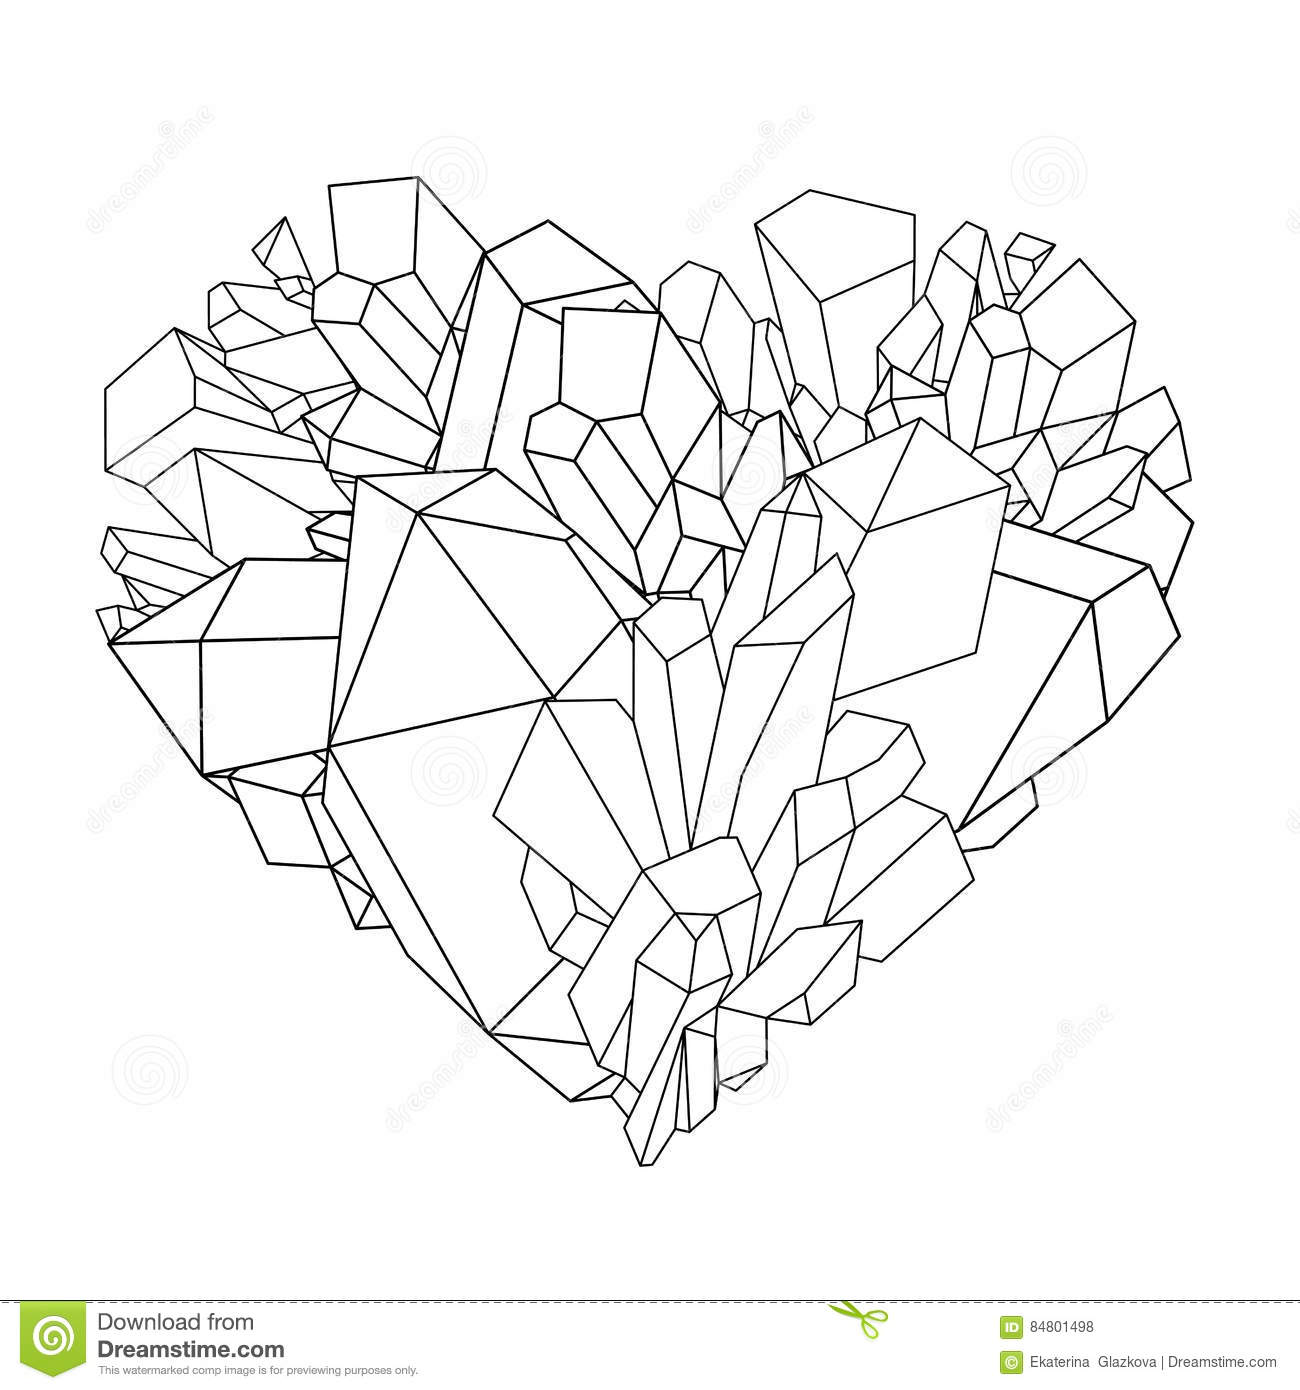 Graphic Crystals In The Shape Of Heart Drawn Line Art Style Vector